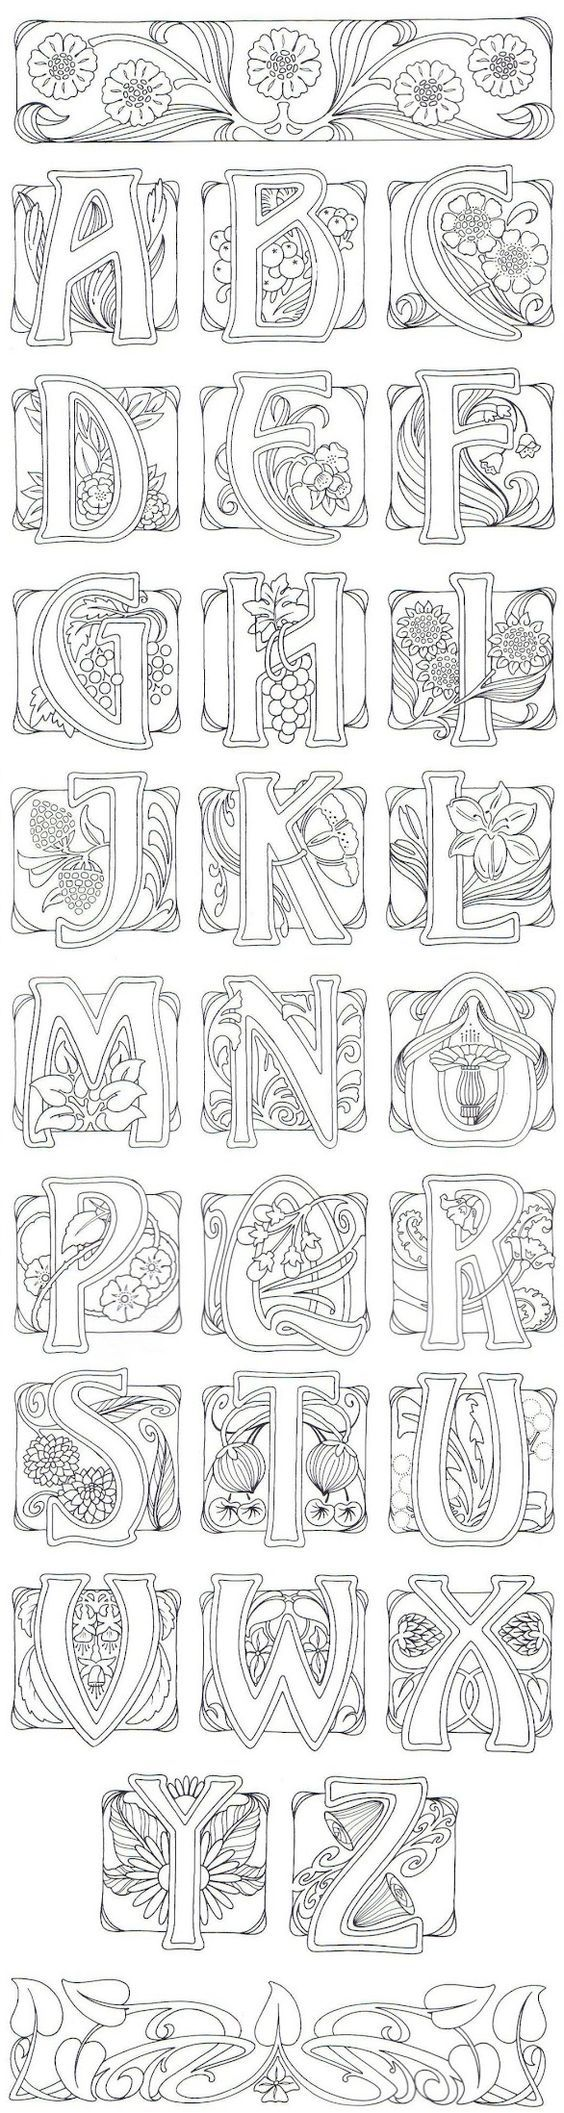 852 best color me crazy images on pinterest coloring books